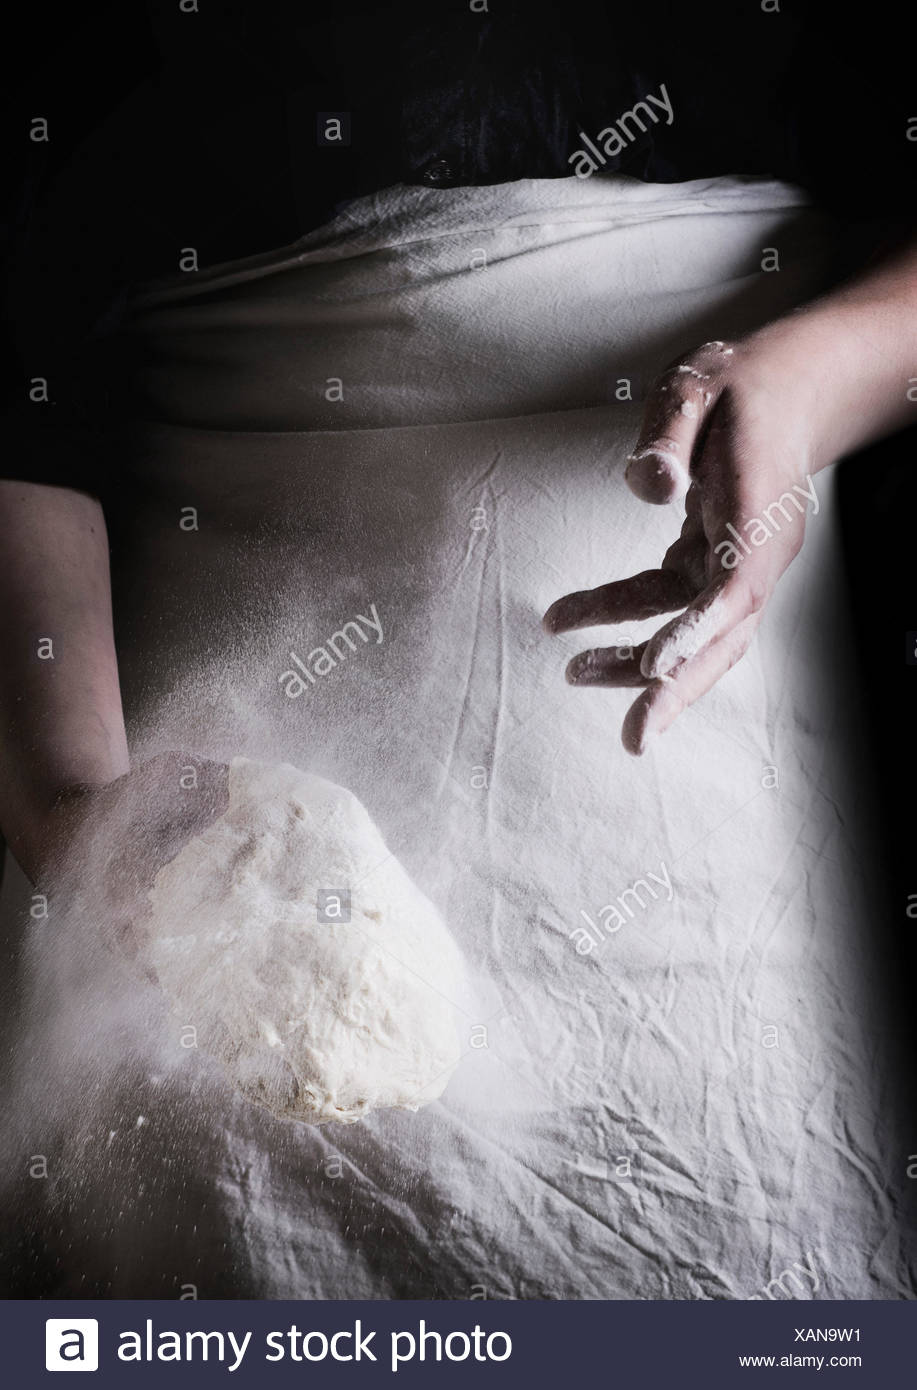 Women's Hands faire la pâte à pizza. Voir la série Photo Stock